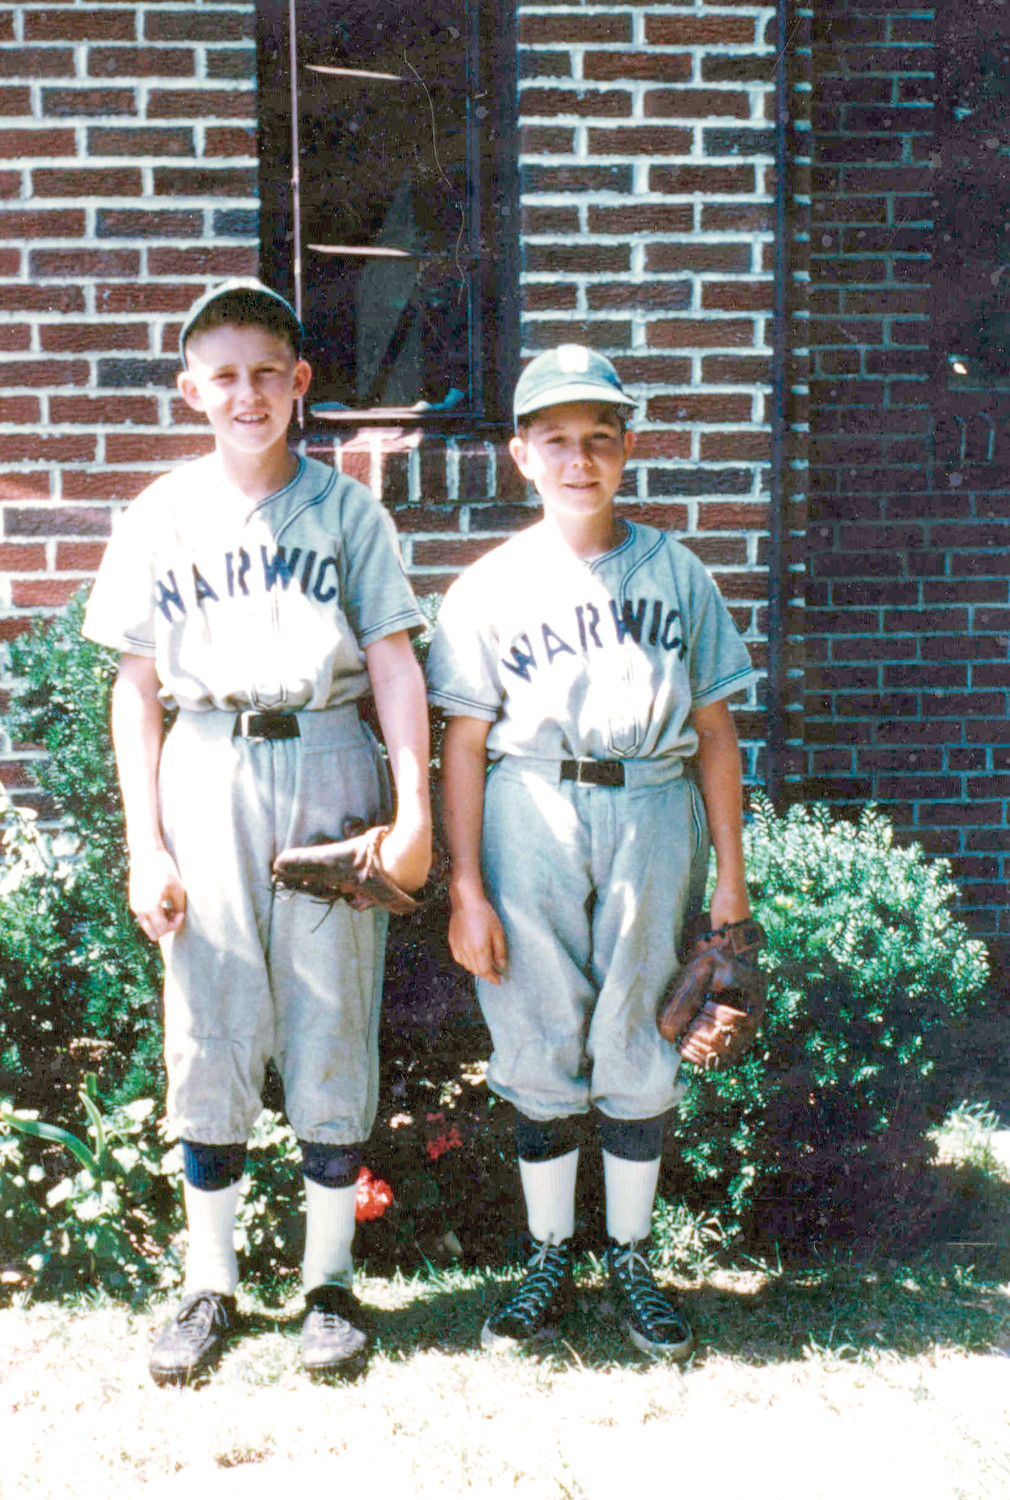 LITTLE LEAGUE BEGINNINGS: Buddy Allenson, and John Kindl, right, played little league ball together for Warwick in the early 1950s. The Warwick 1954 All-Star team won the Rhode Island Little League Championship over Westerly, in a game that drew 1,100 fans.